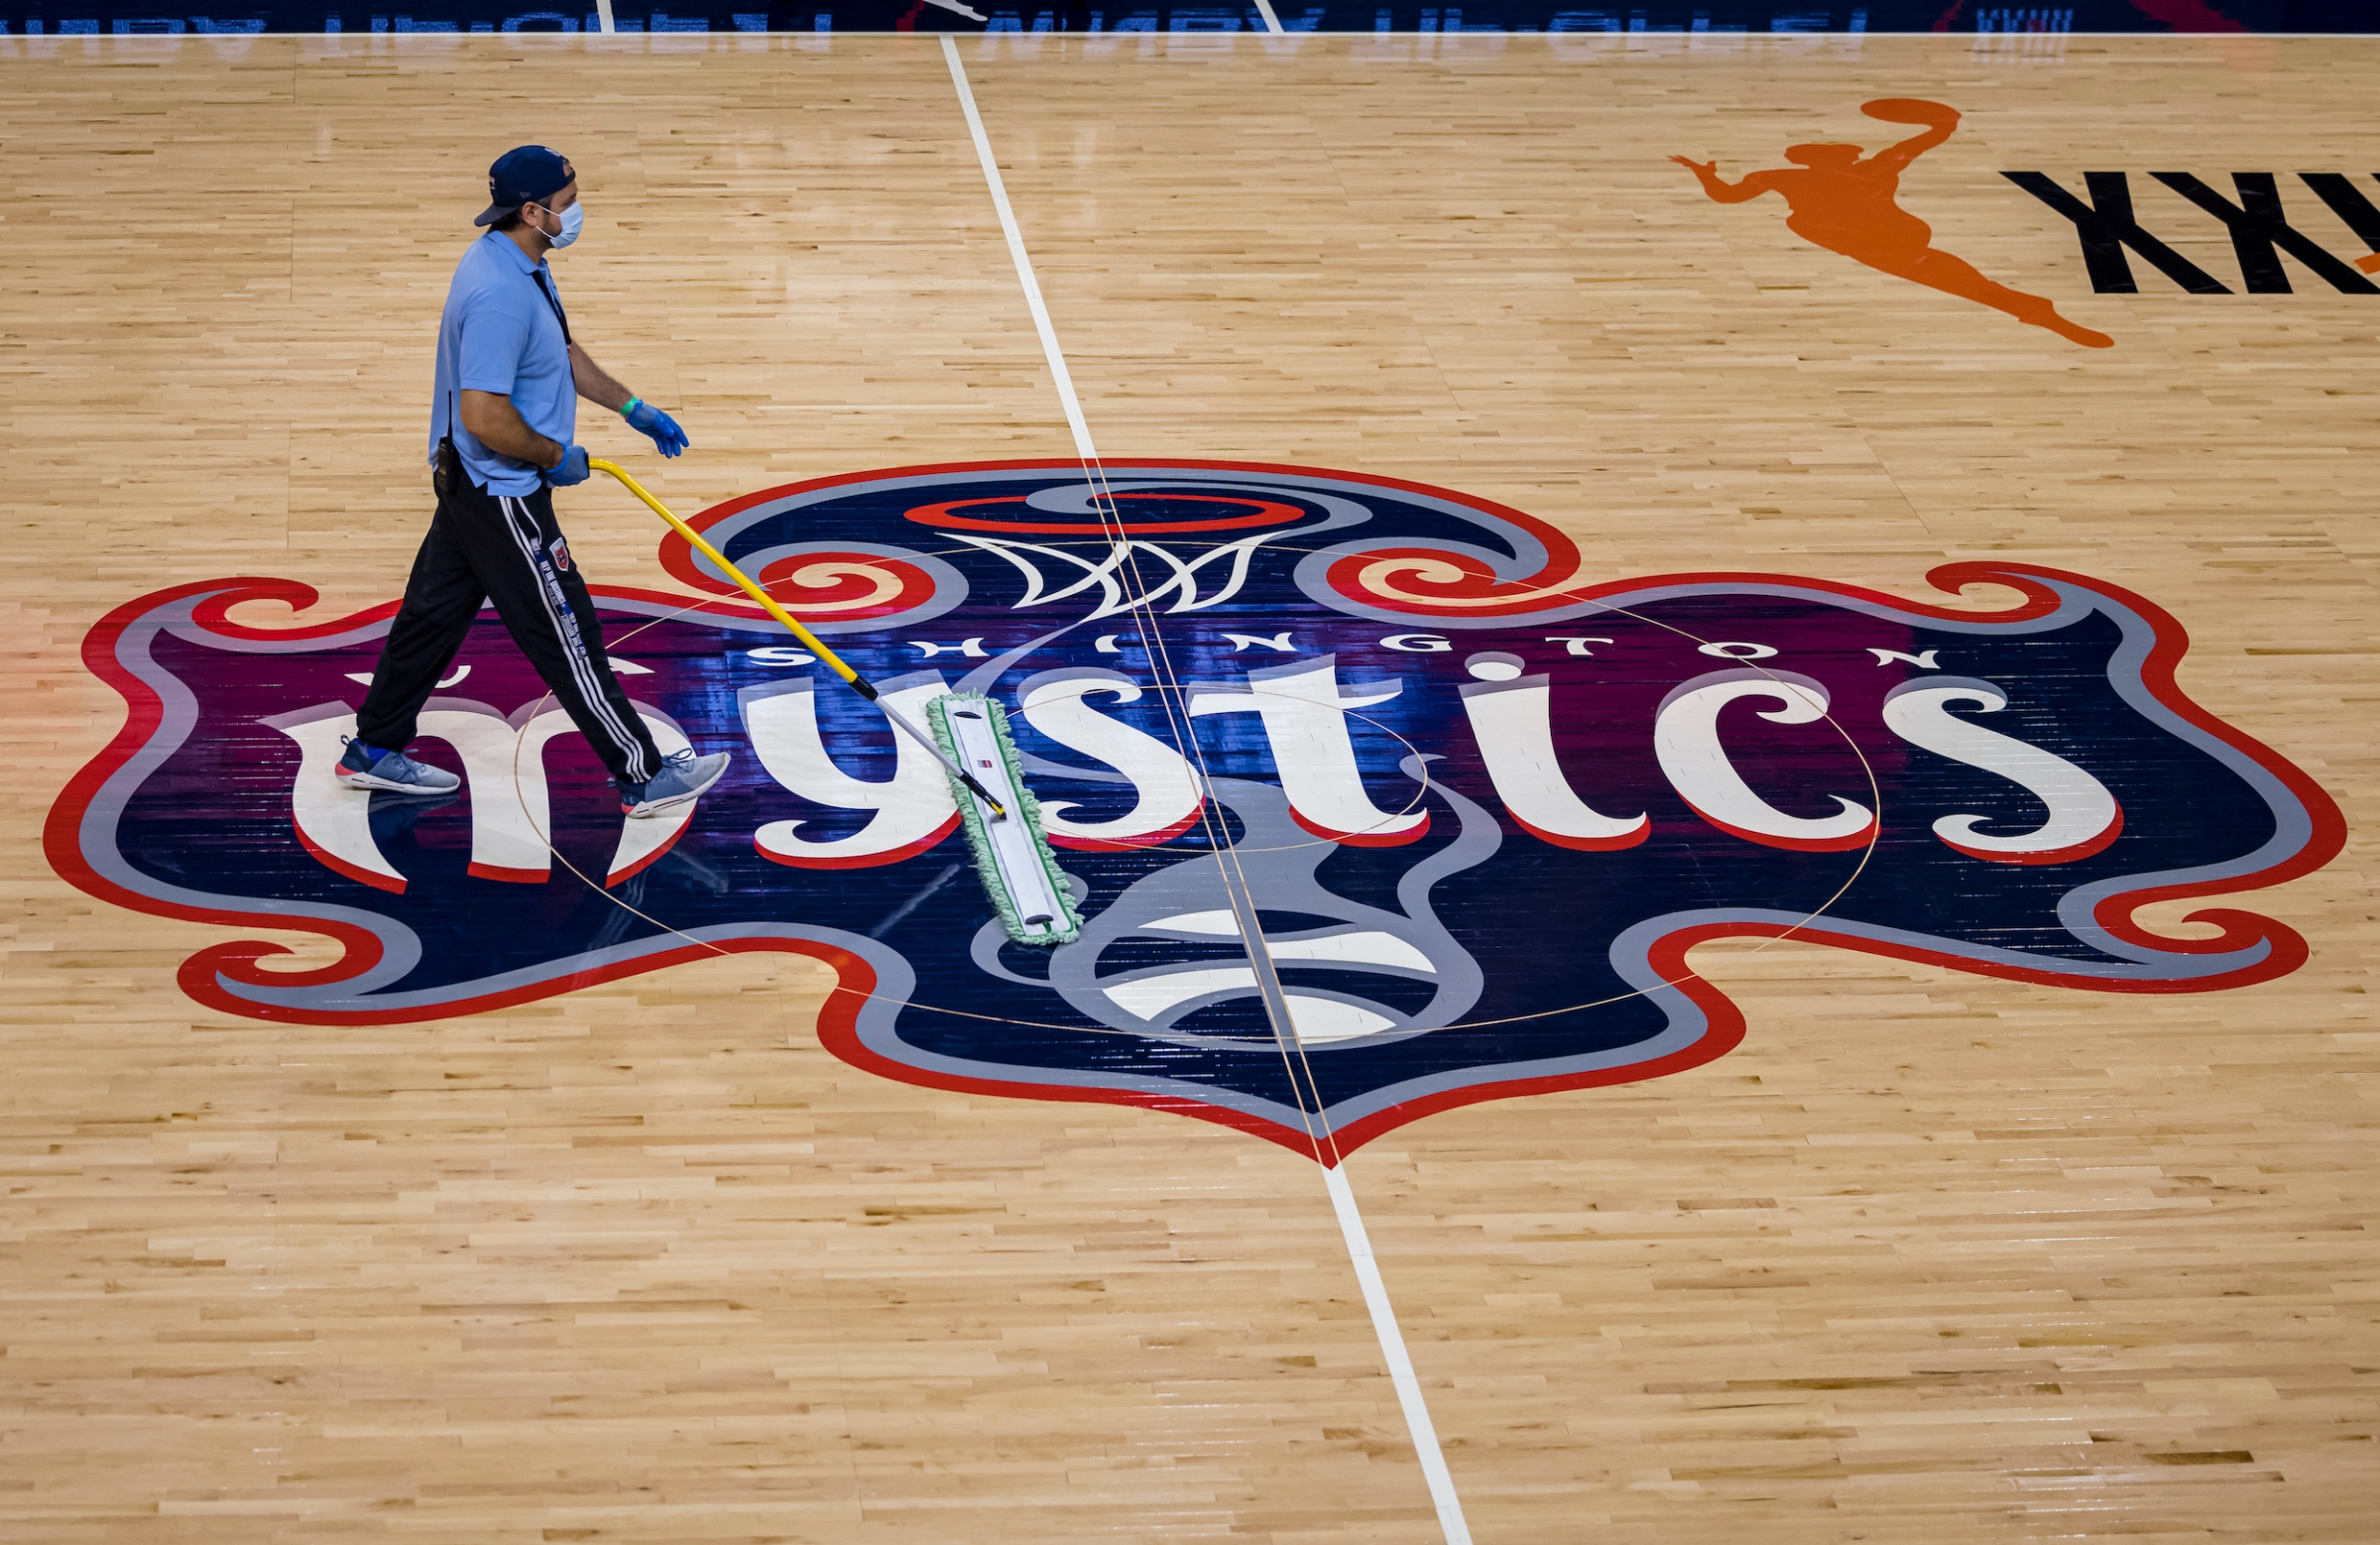 A worker sweeps the court before the second half of the game between the Washington Mystics and the Chicago Sky at Entertainment & Sports Arena on May 15, 2021 in Washington, DC.